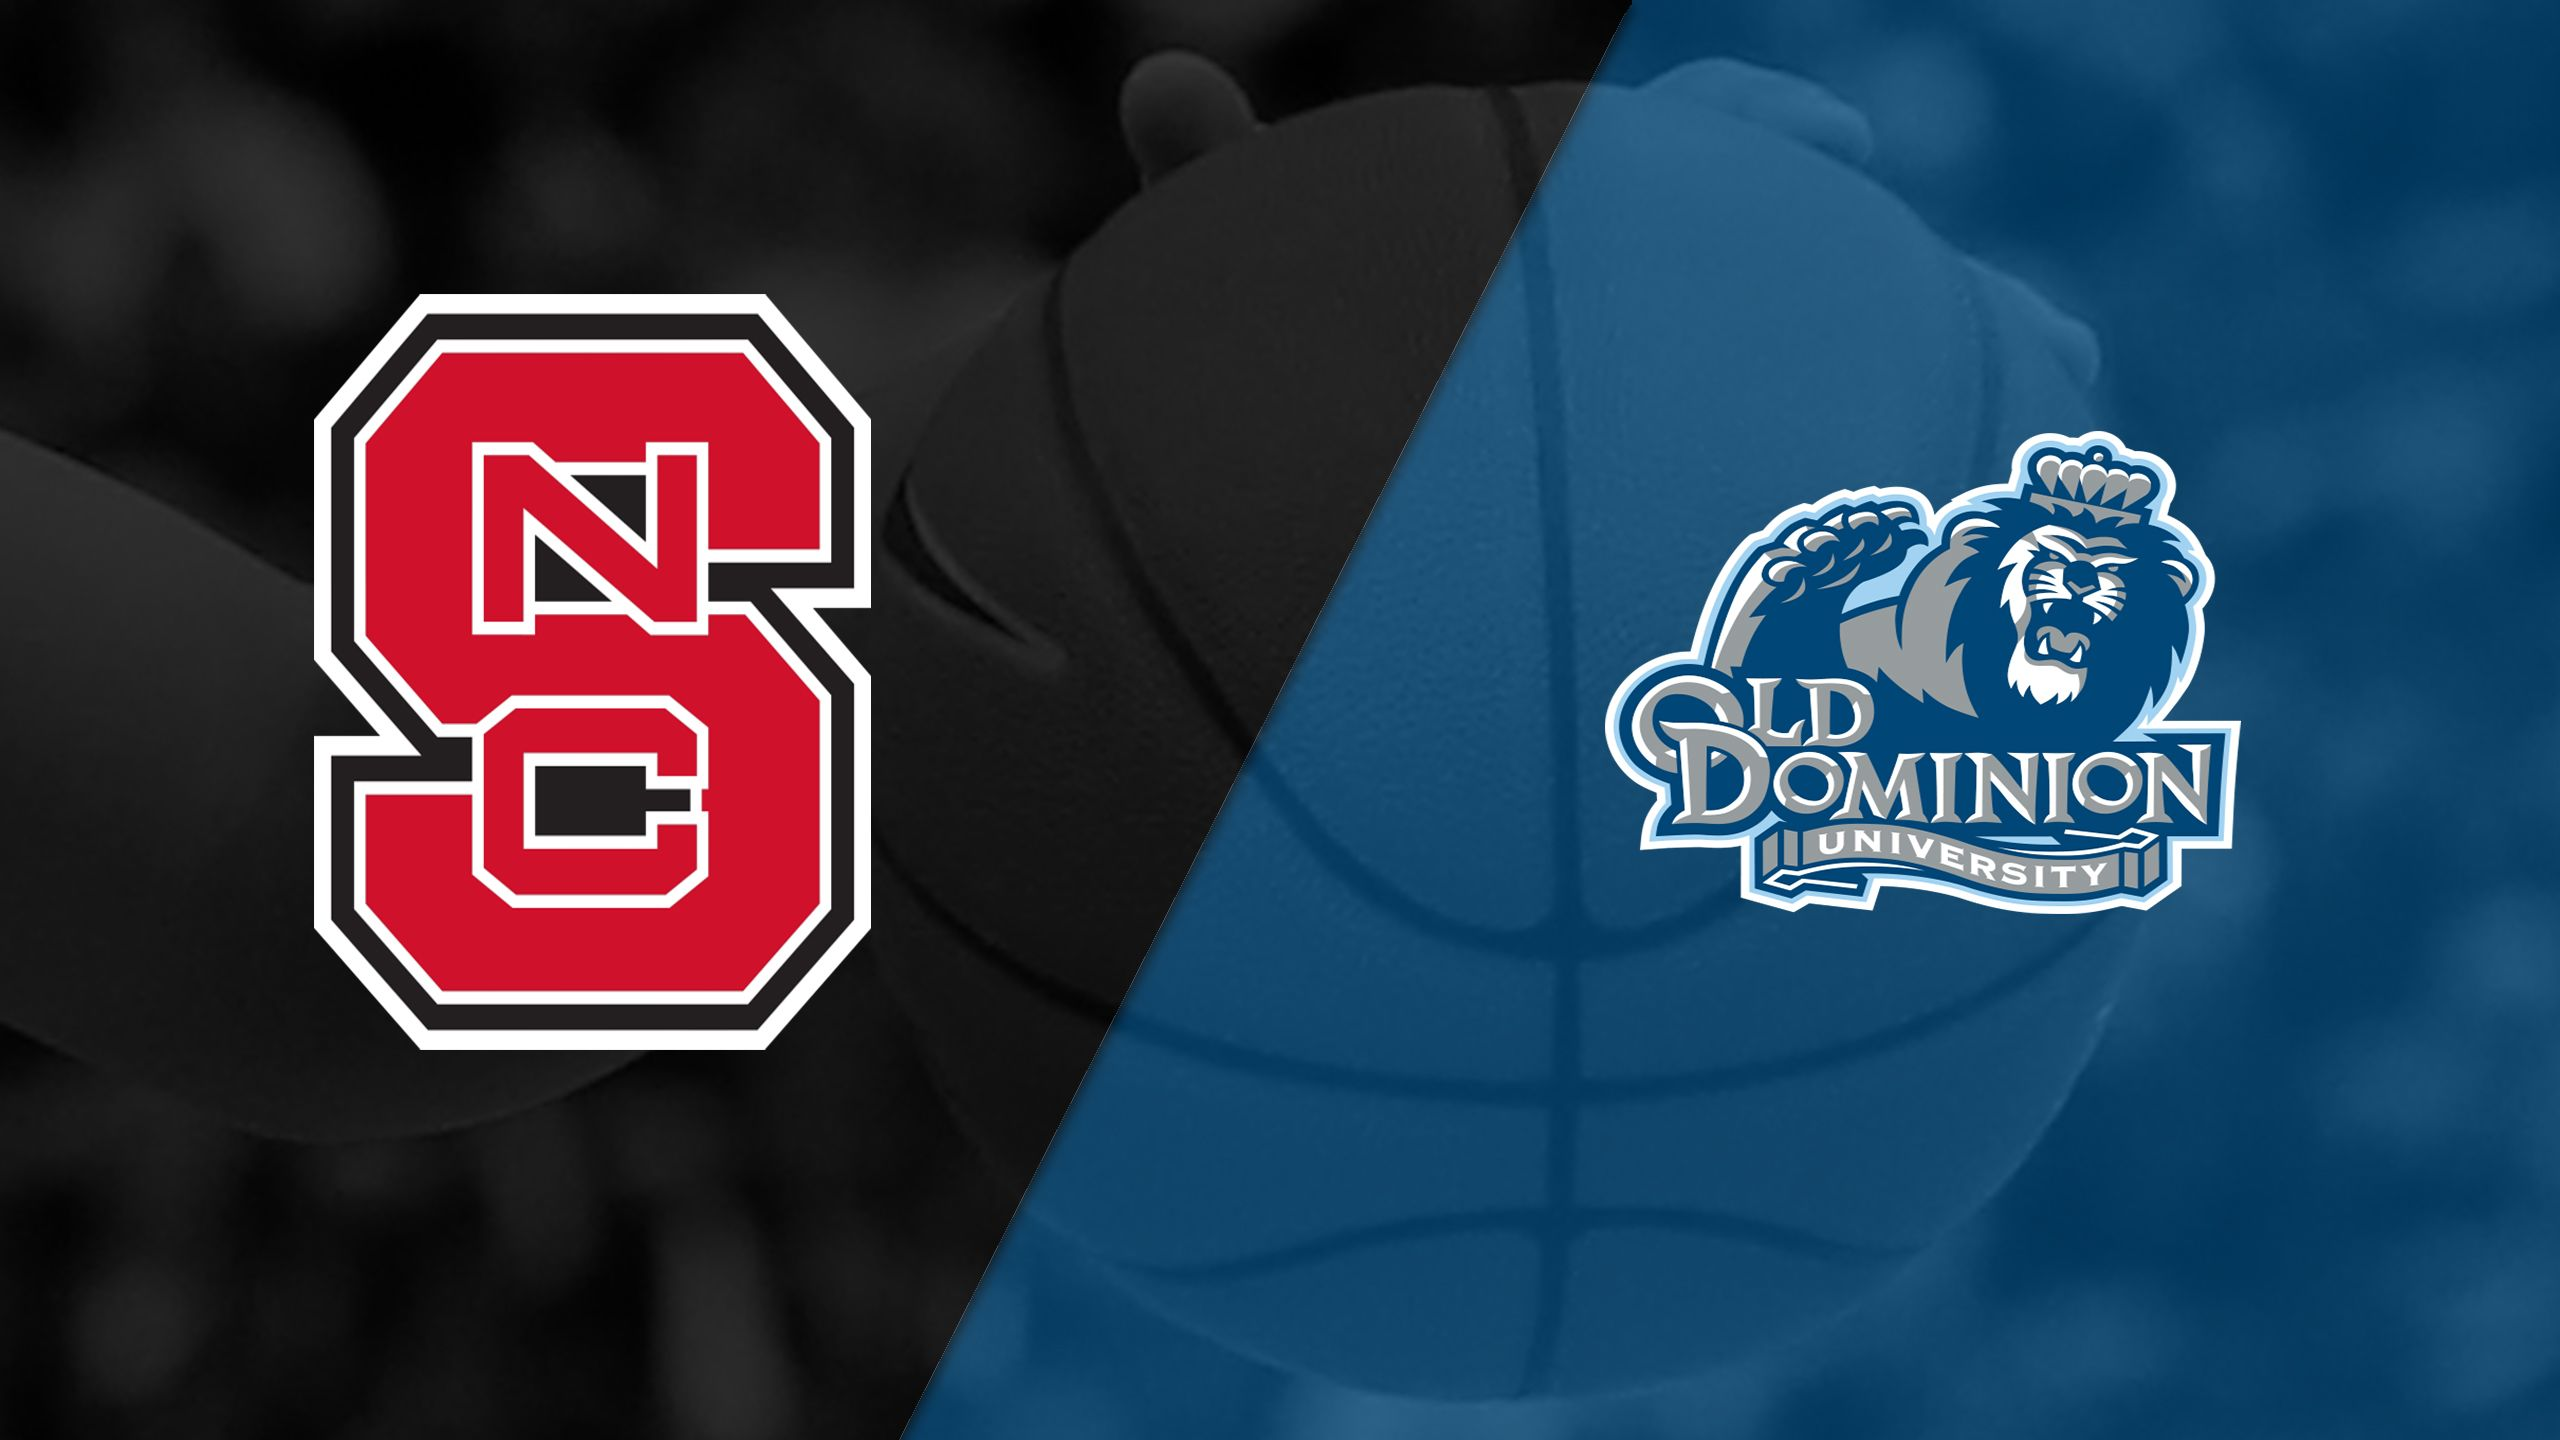 NC State vs. Old Dominion (W Basketball)